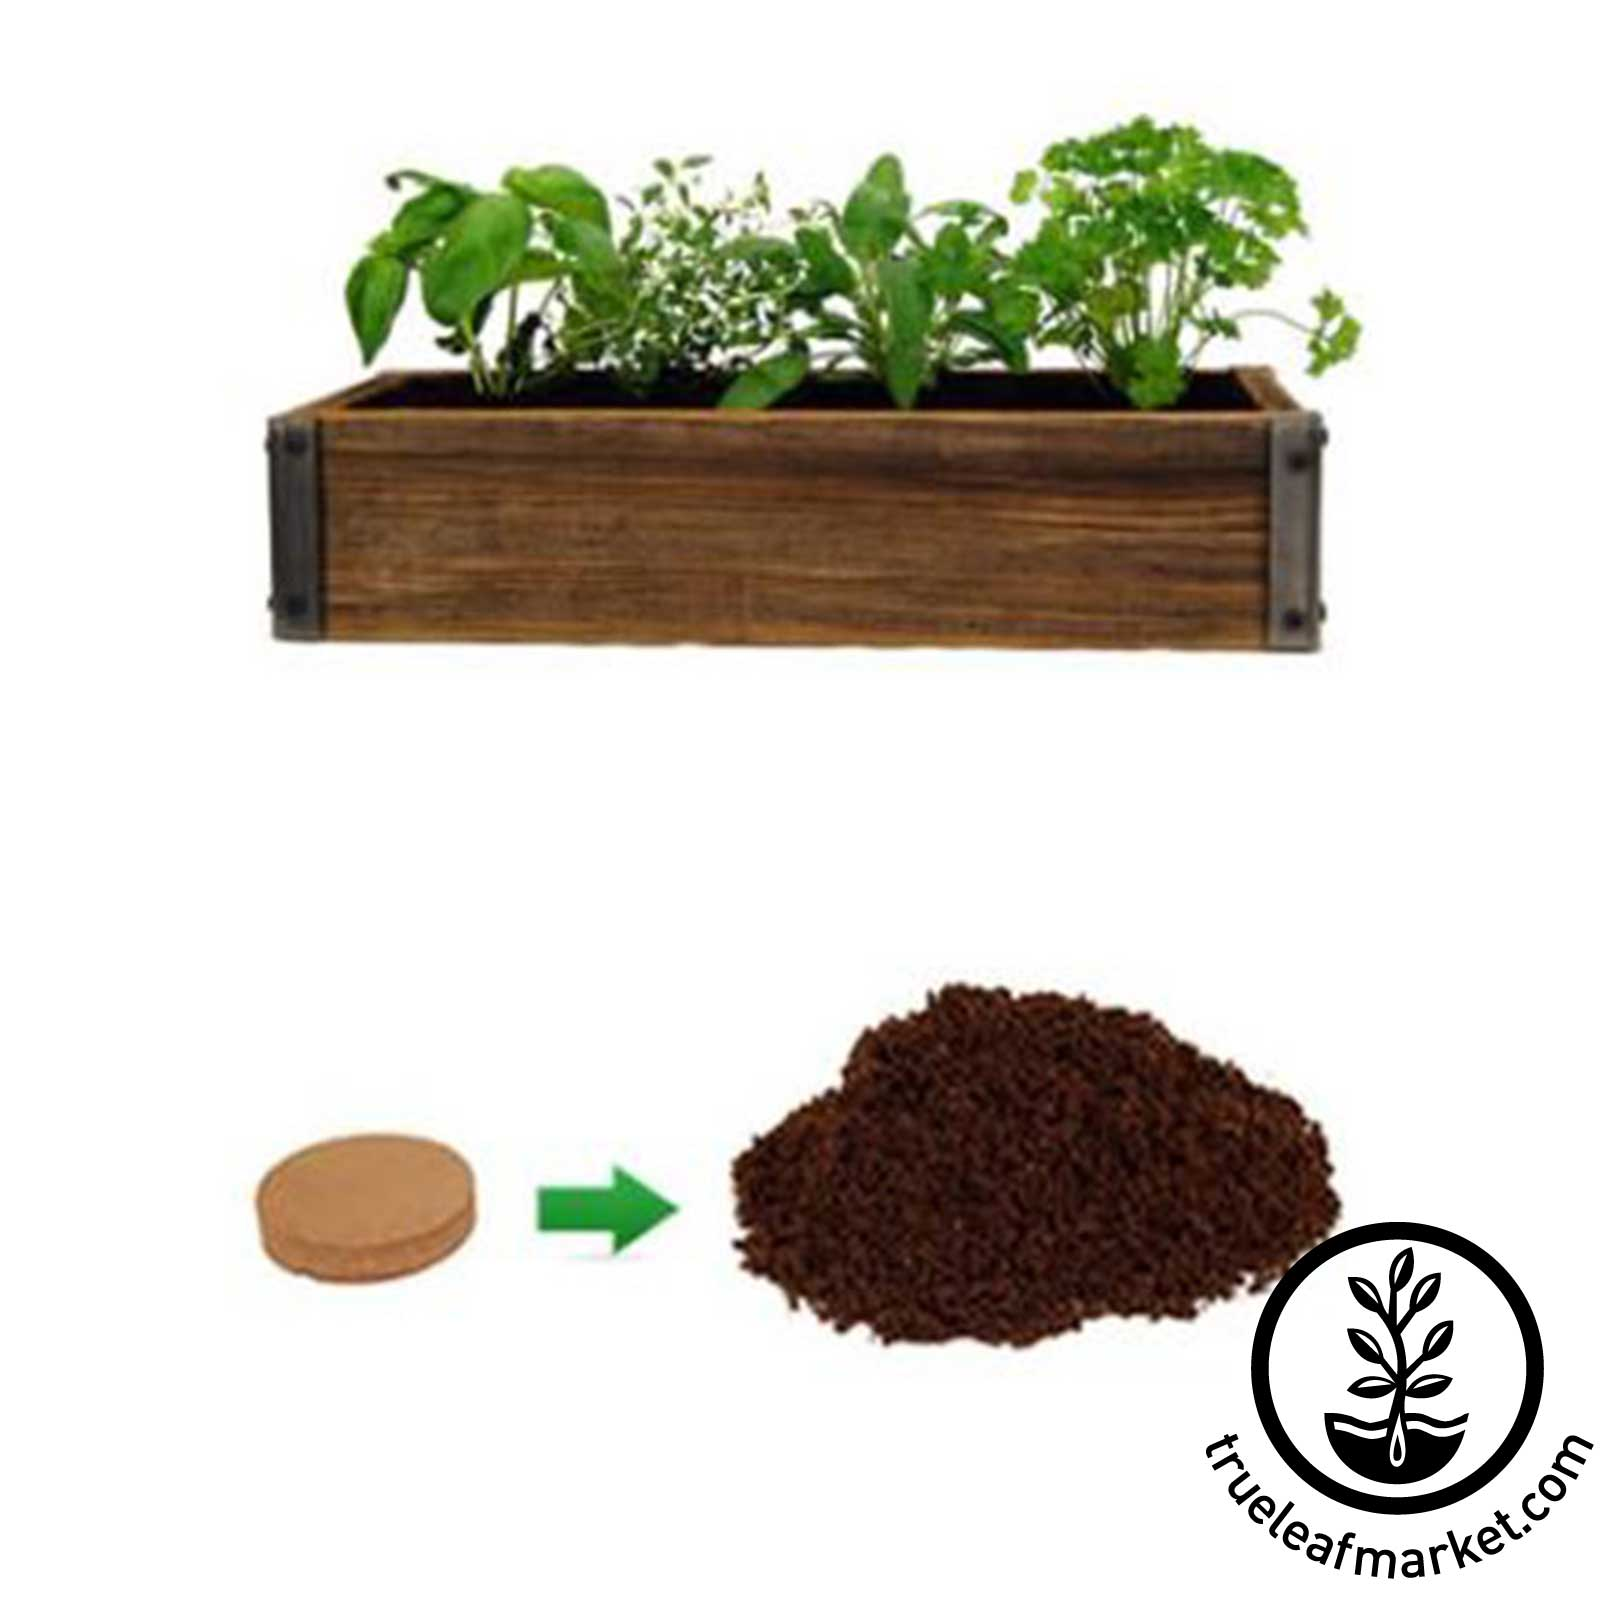 Culinary Herb Garden - Wondersoil - Just Add Water